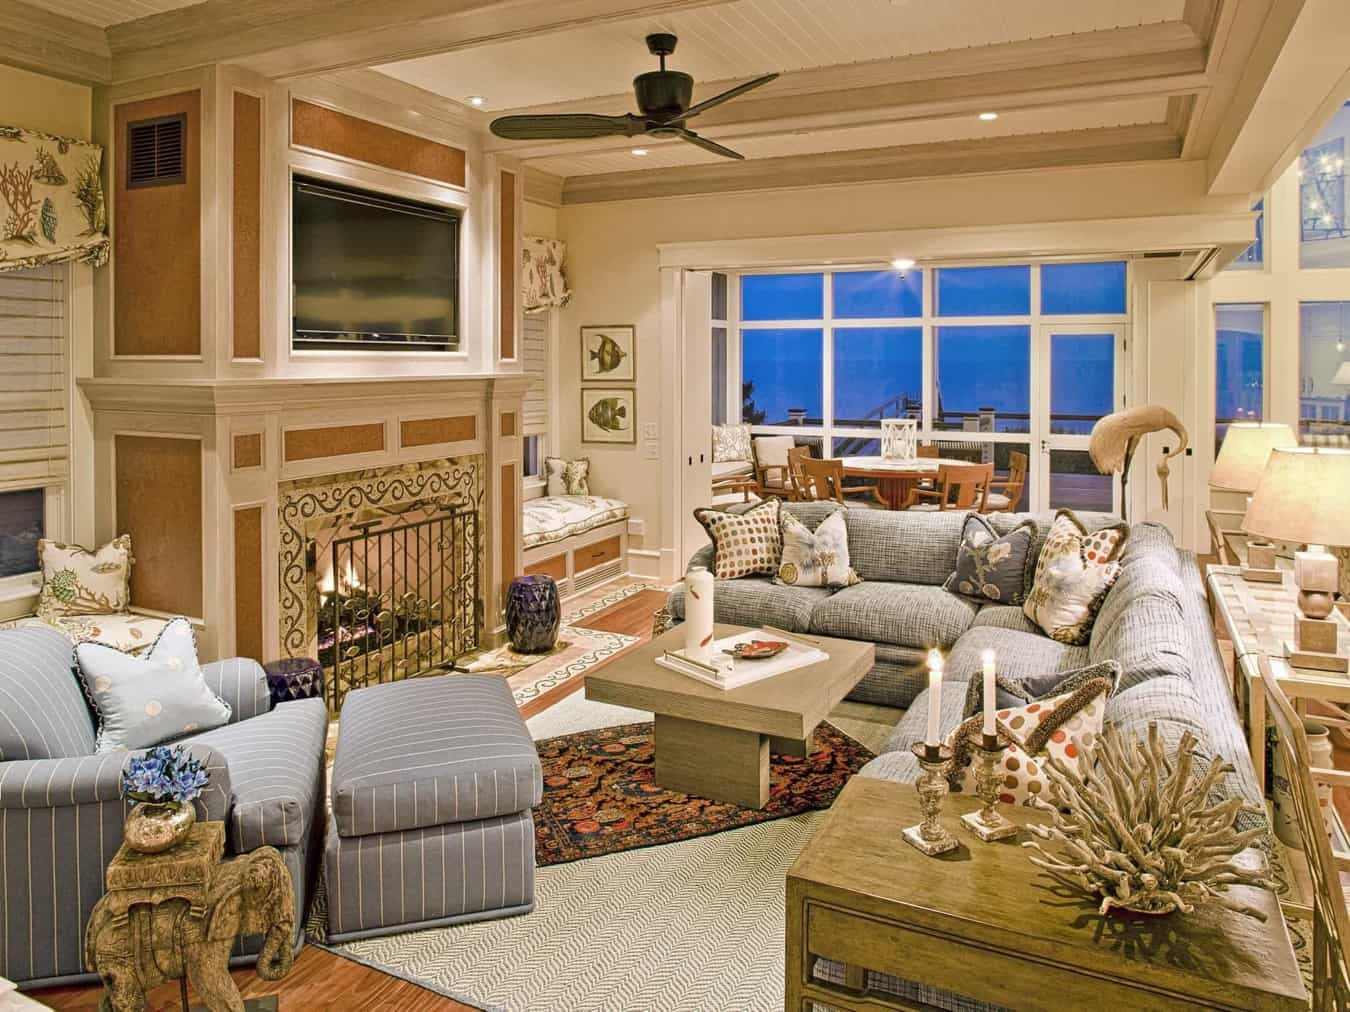 Featured Image of Elegant Coastal Open Space Living Room